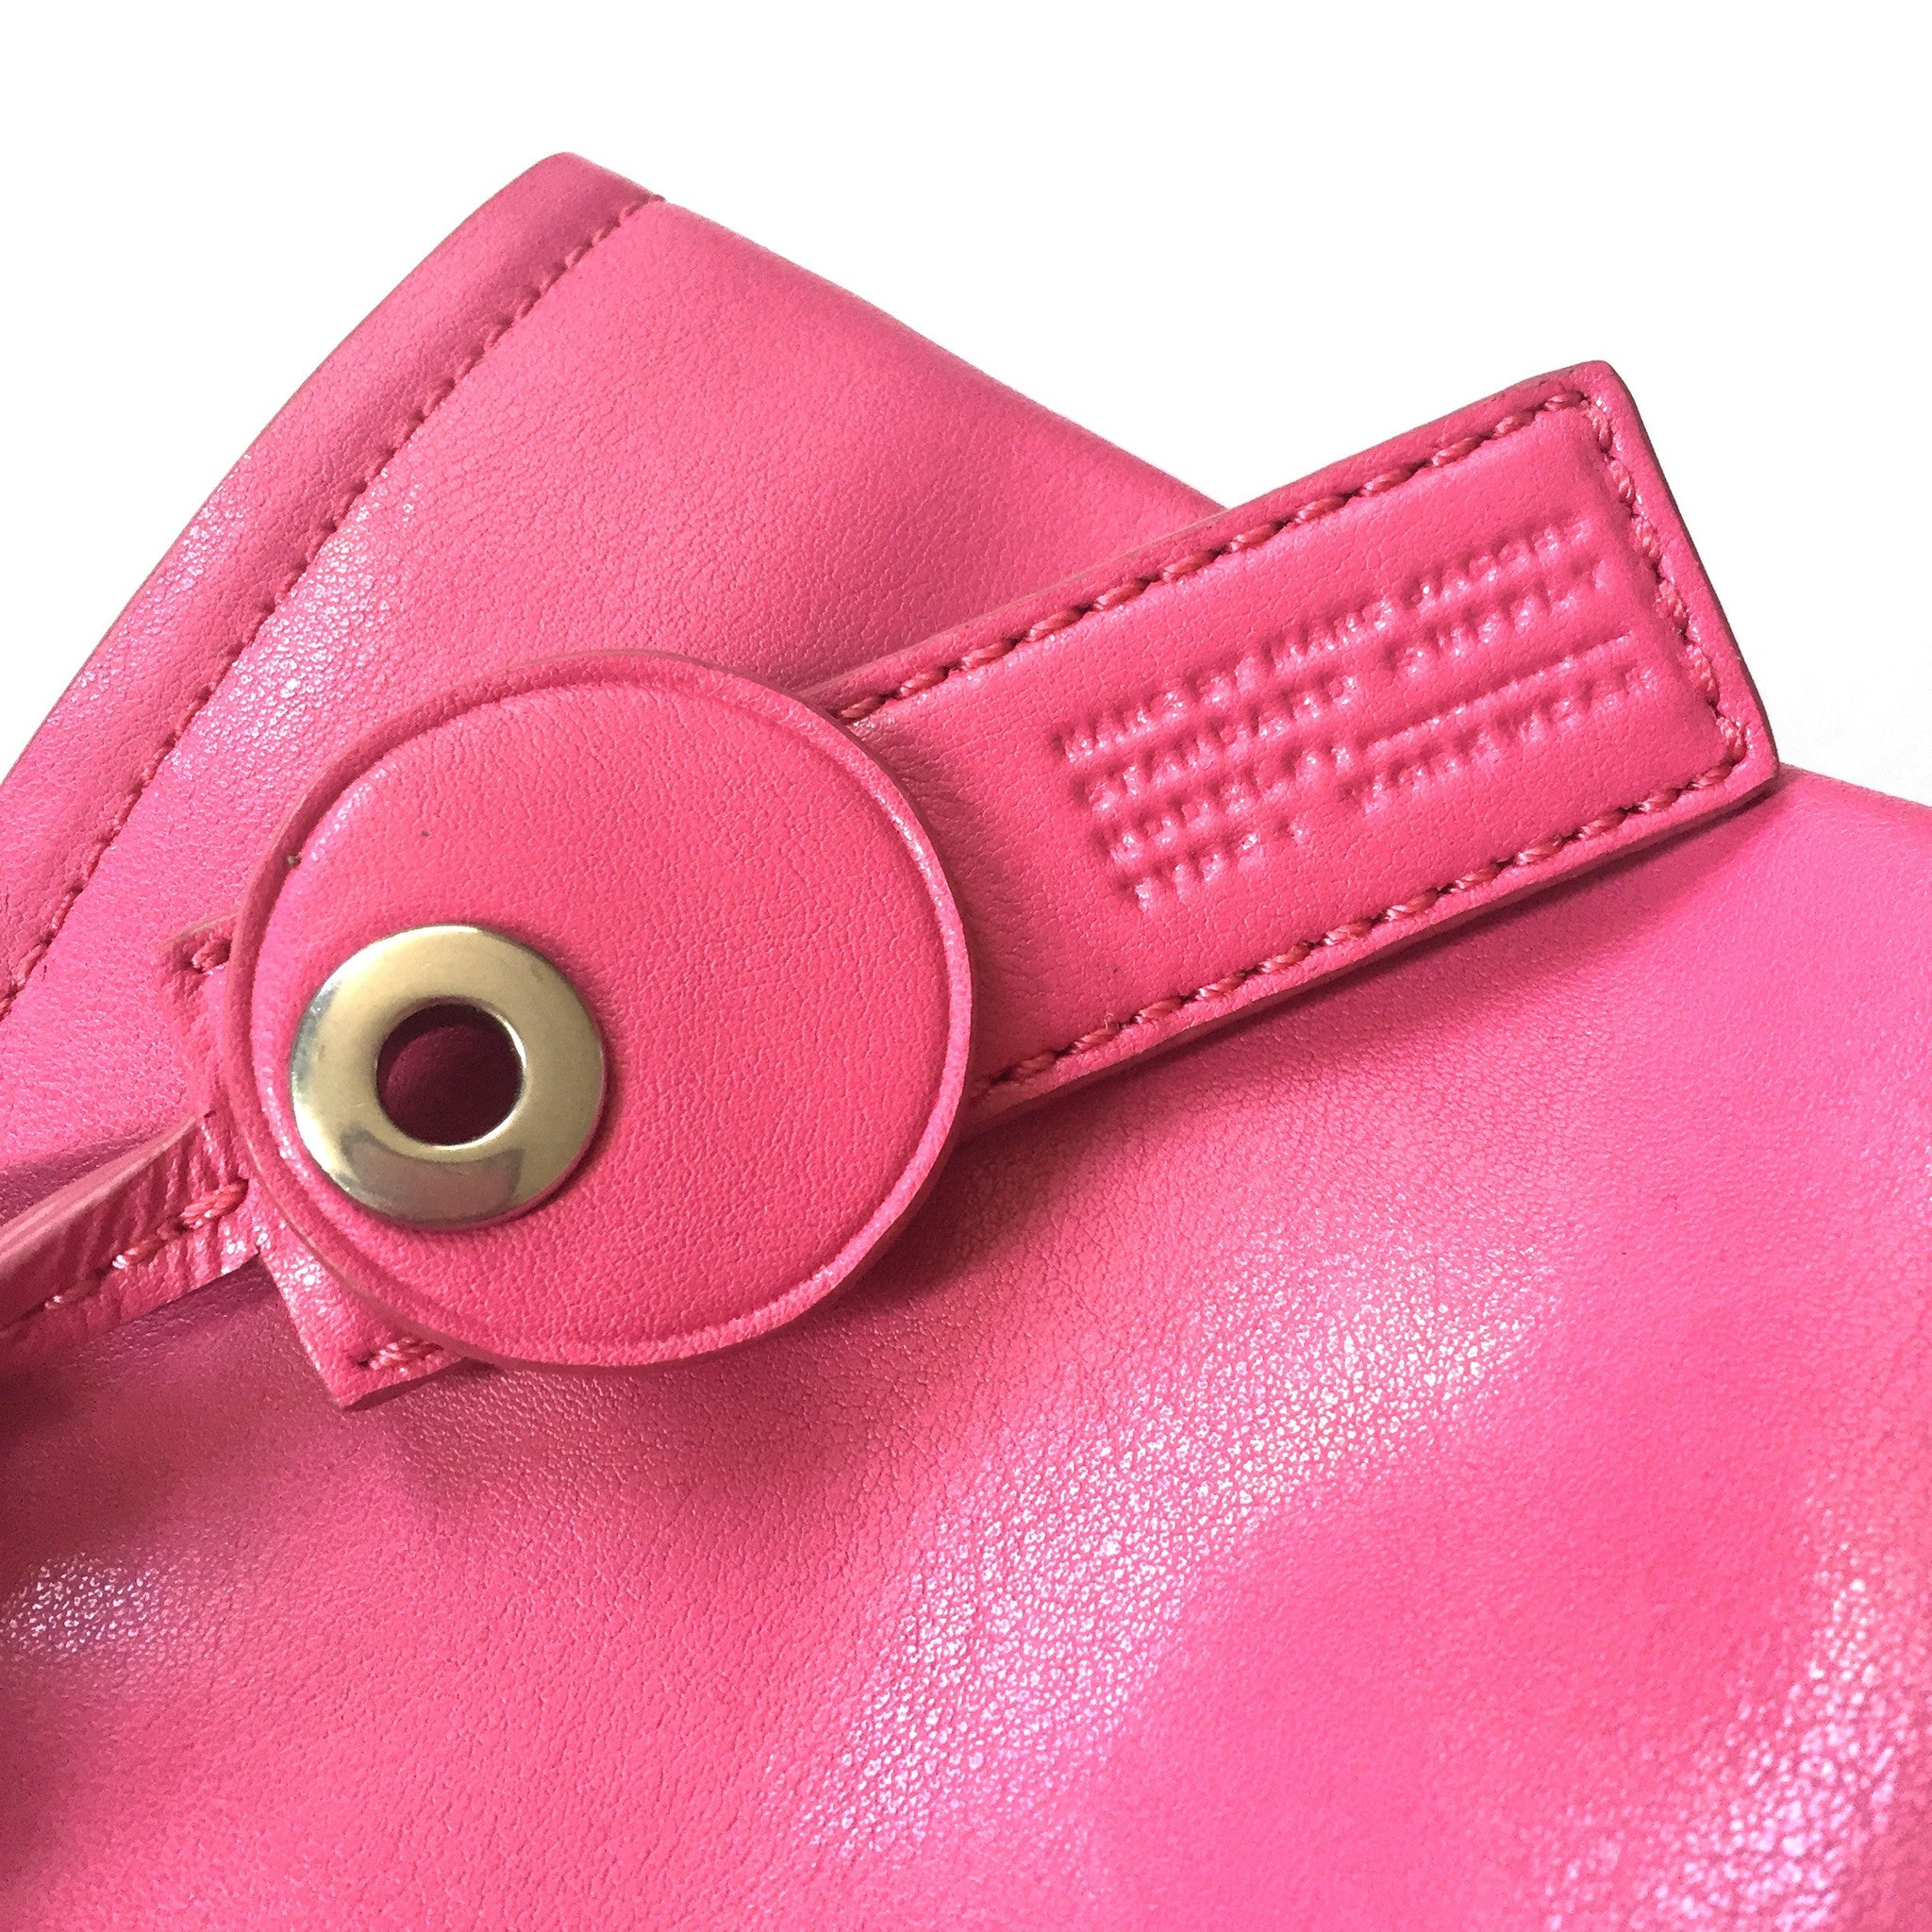 Marc Jacobs - Lipstick Pink Leather Handbag